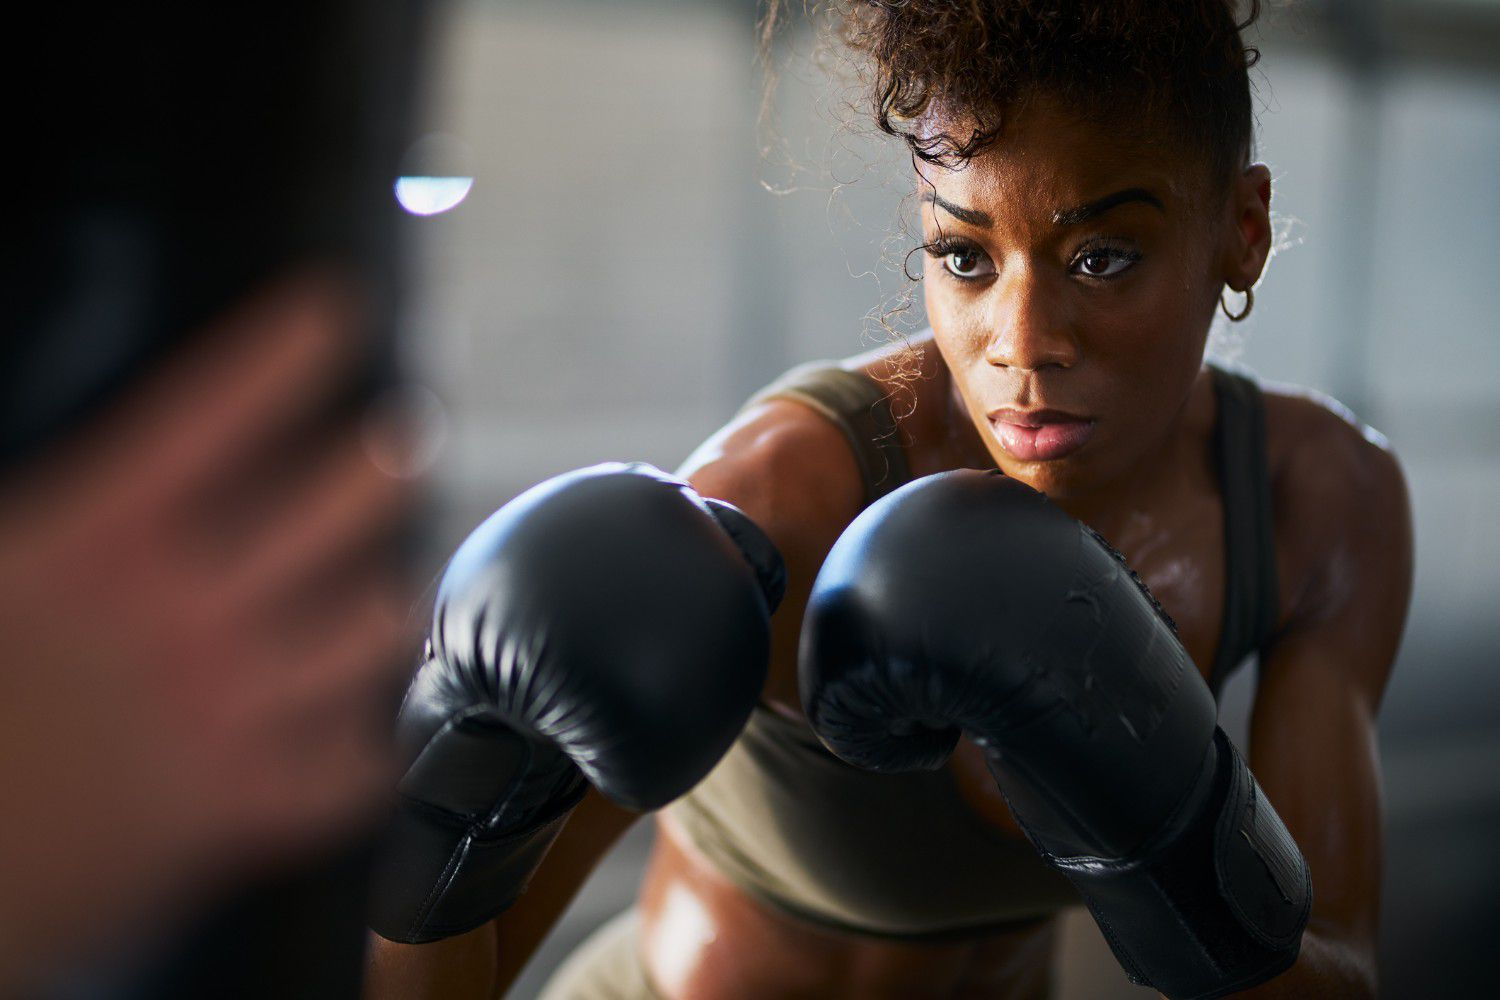 Woman with curly hair boxing